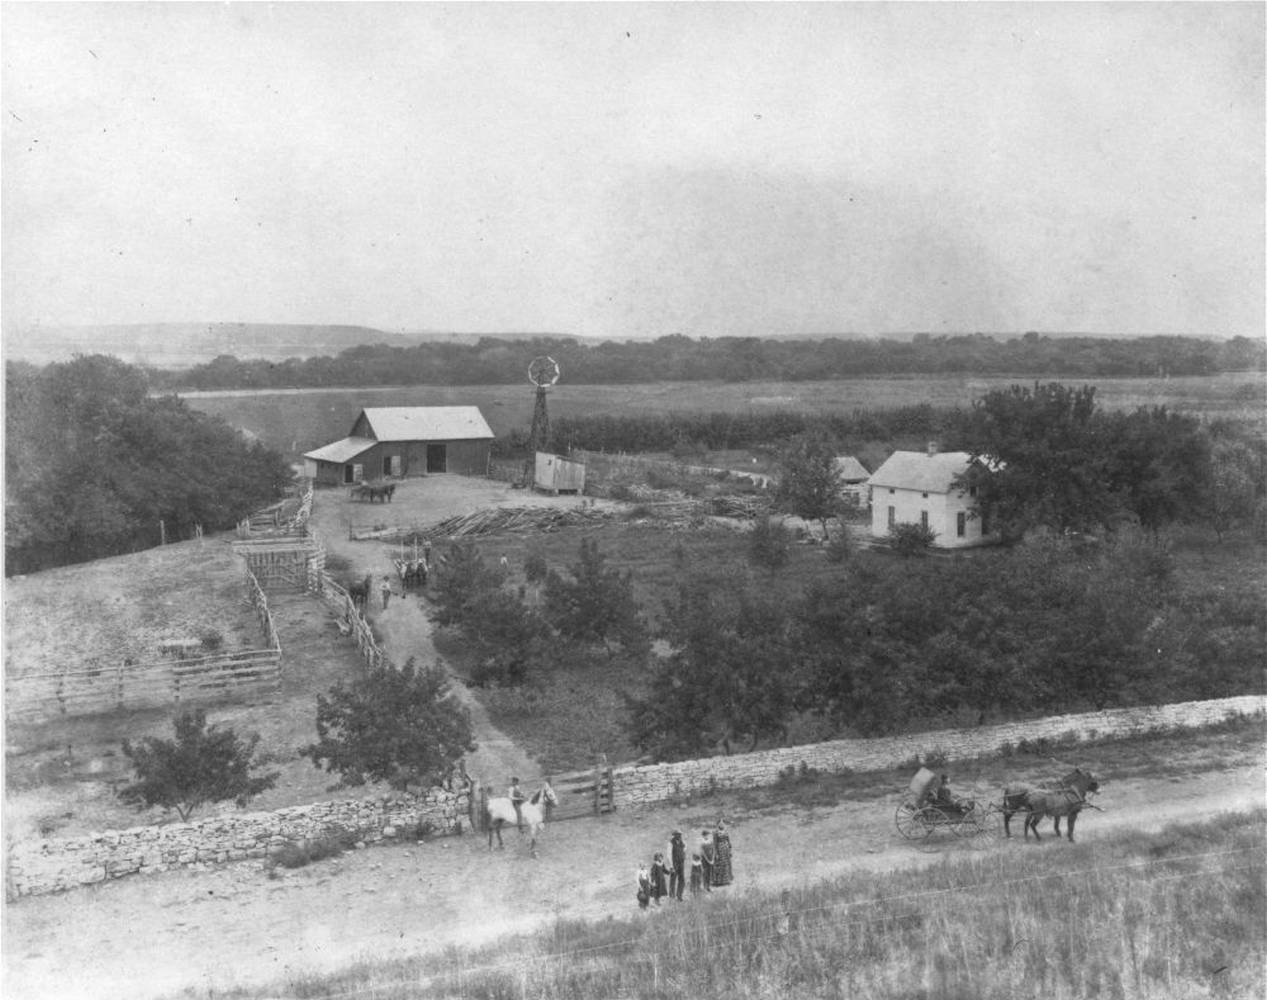 High view of the ranch site in the 1880s